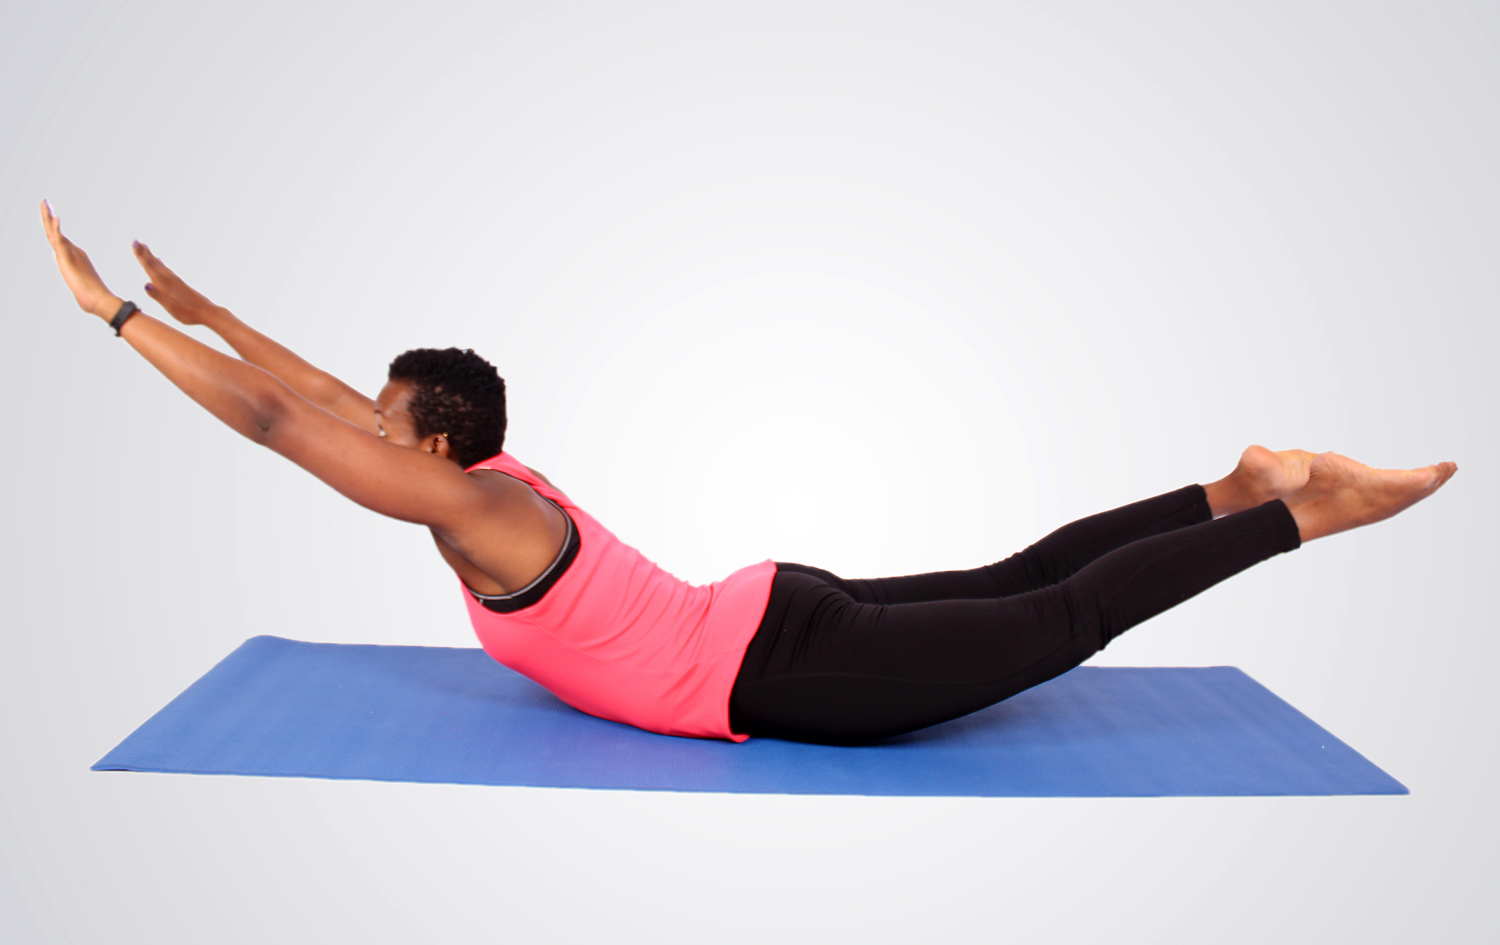 Young Fit Woman Doing Superman Core Exercise for Lower Back